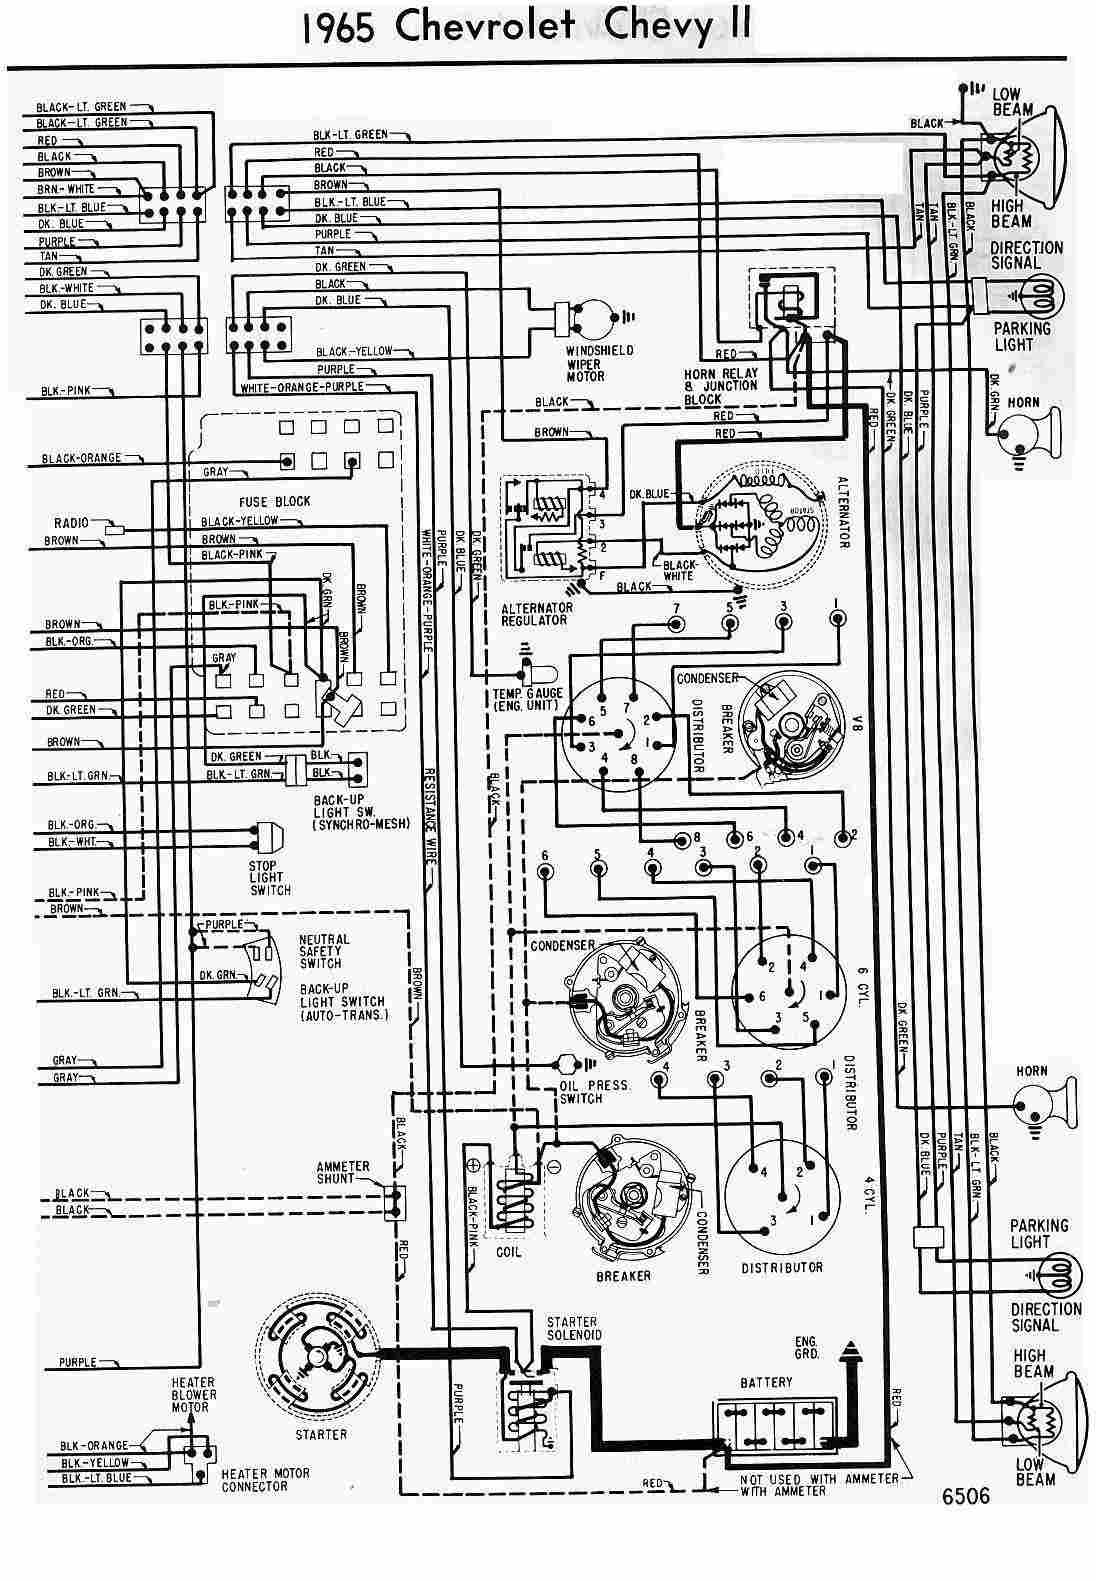 small resolution of 1976 corvette dash wiring diagram schematic simple wiring diagramswiring diagram 1964 chevy corvette wiring diagrams 1977